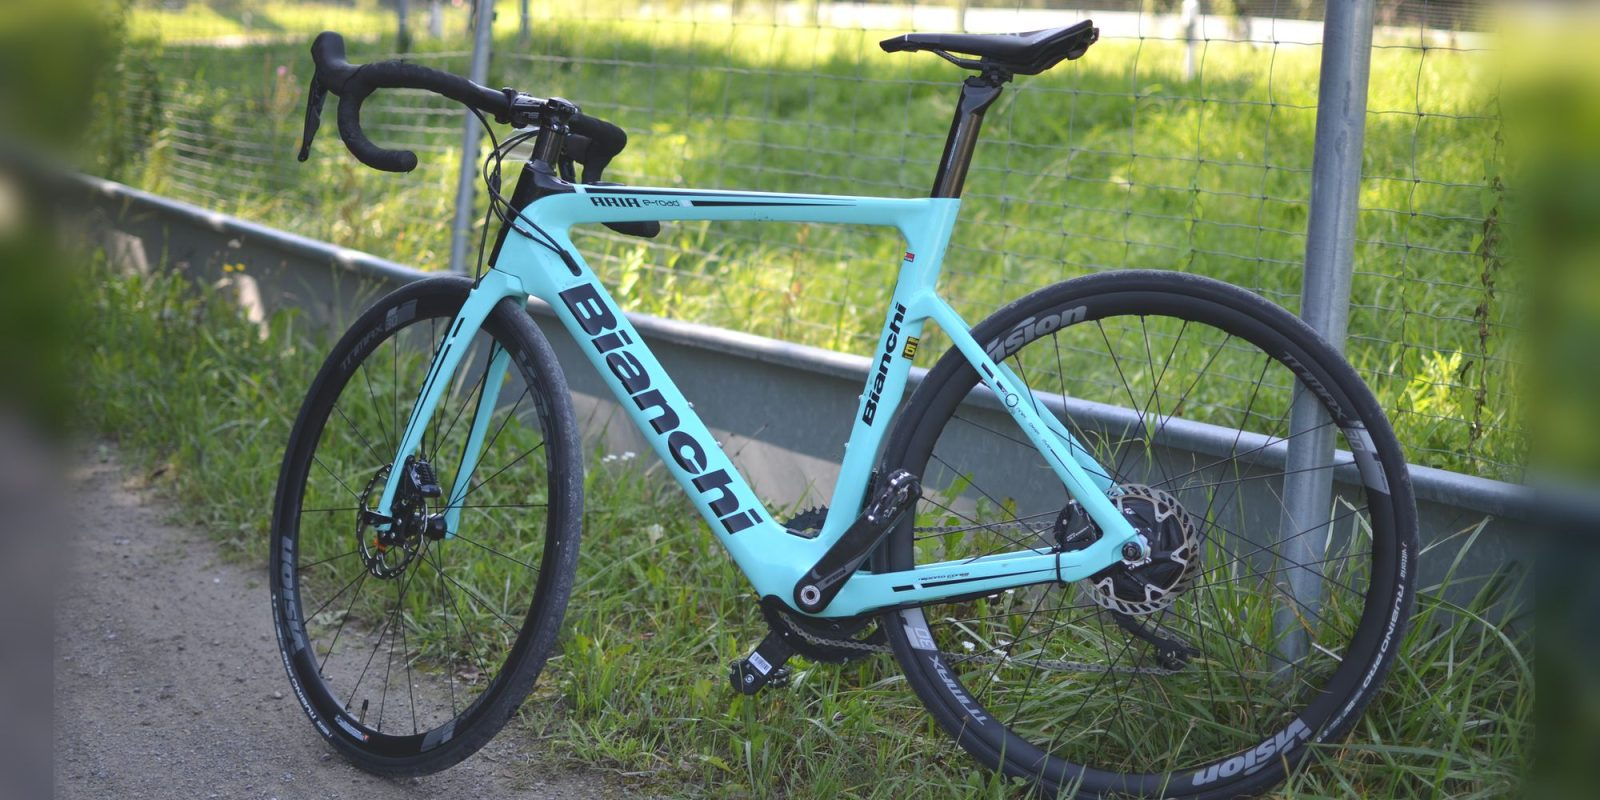 First Ride: Bianchi Aria E-Road – Believe it or not this is an electric bicycle